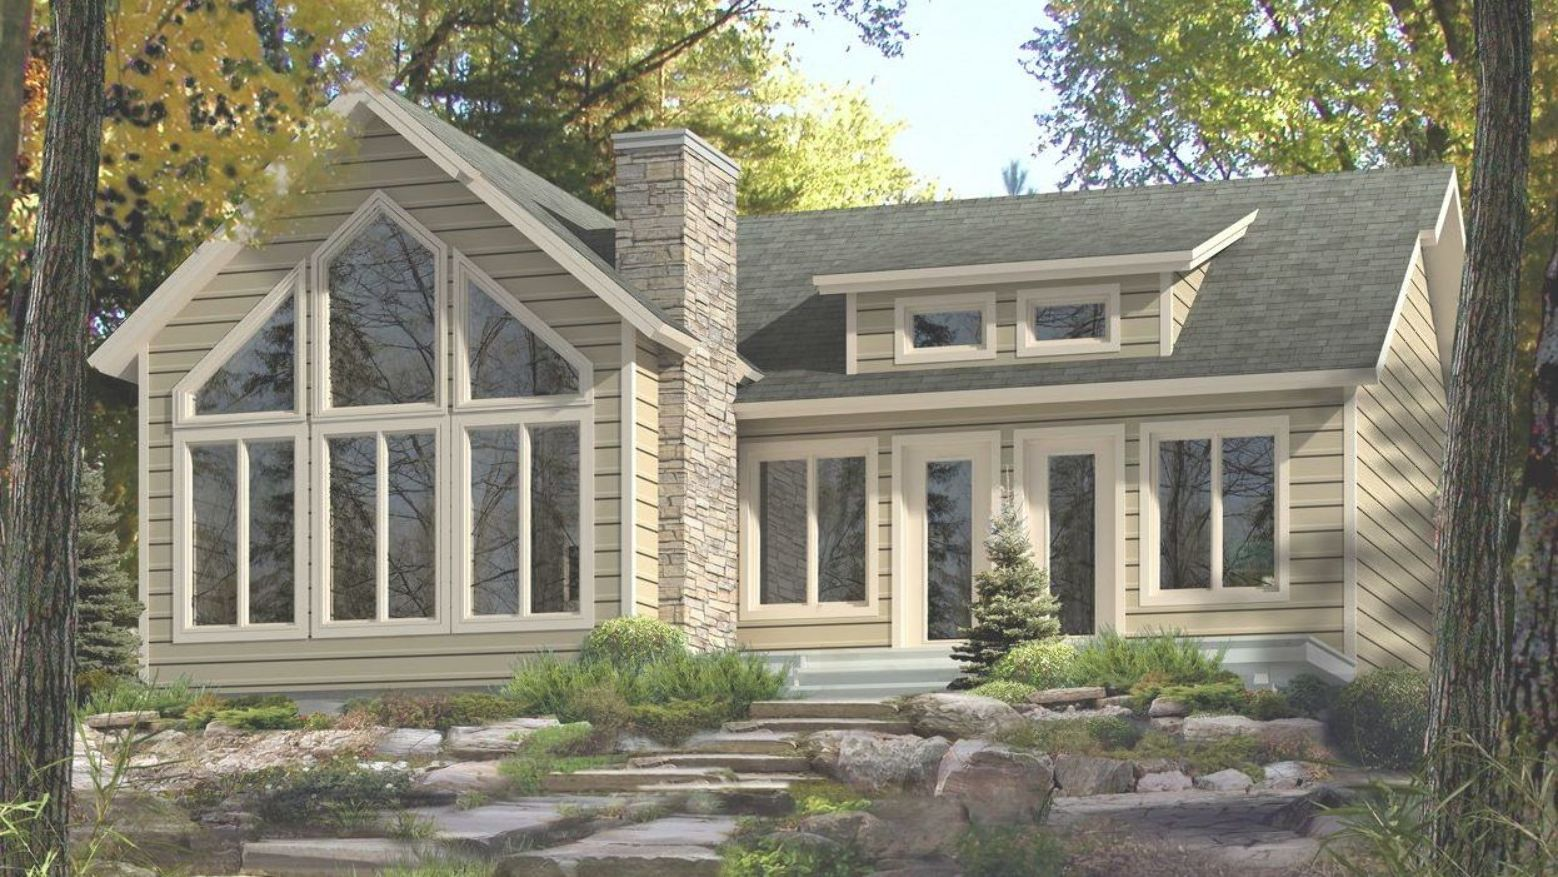 Cottage Plan 2 Bed 36 Wide Kit Home From Home Hardware Click For Floor Plan Add Window To Kitchen And Left Wall O Aspen House Cottage Plan Cottage Homes